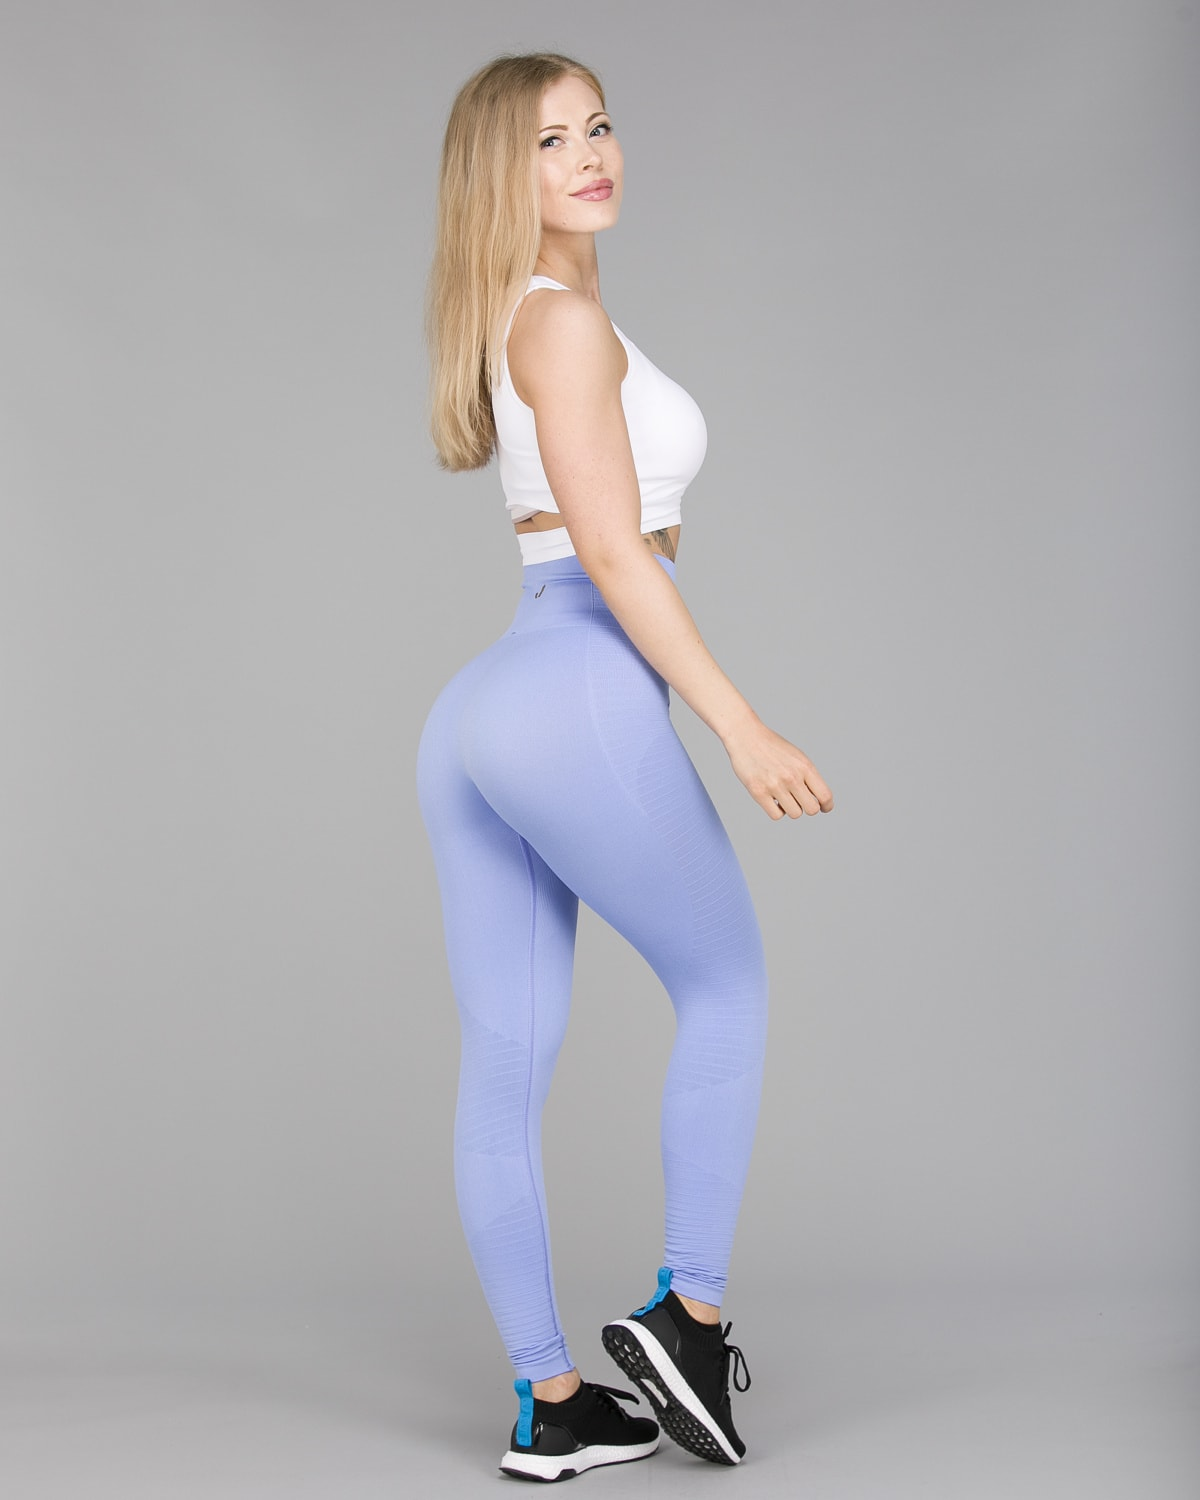 Jerf Gela 2.0 Tights Blue Pastel9